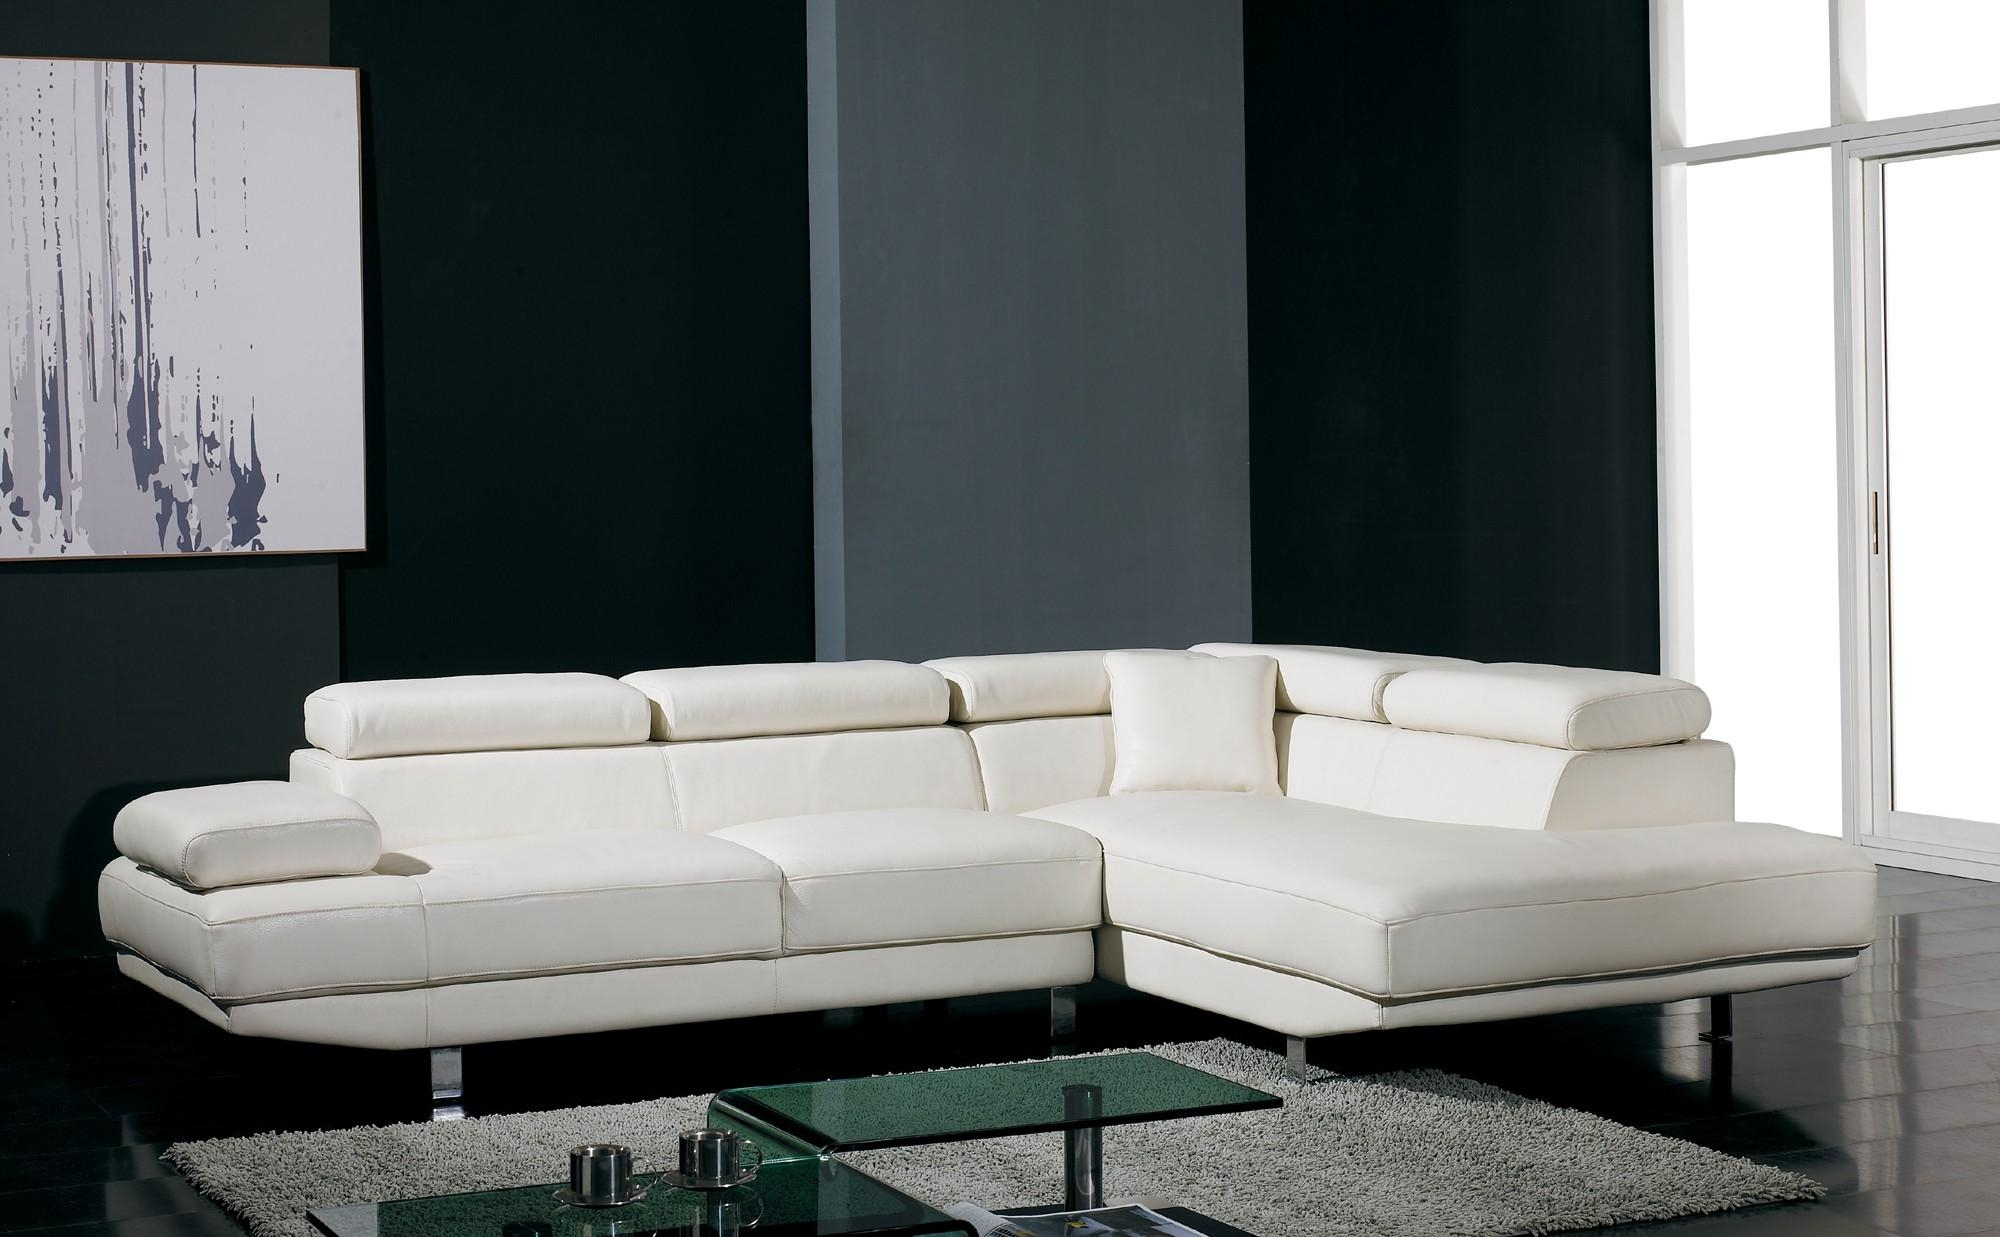 T60 Ultra Modern White Leather Sectional Sofa Intended For Leather Modern Sectional Sofas (View 9 of 20)